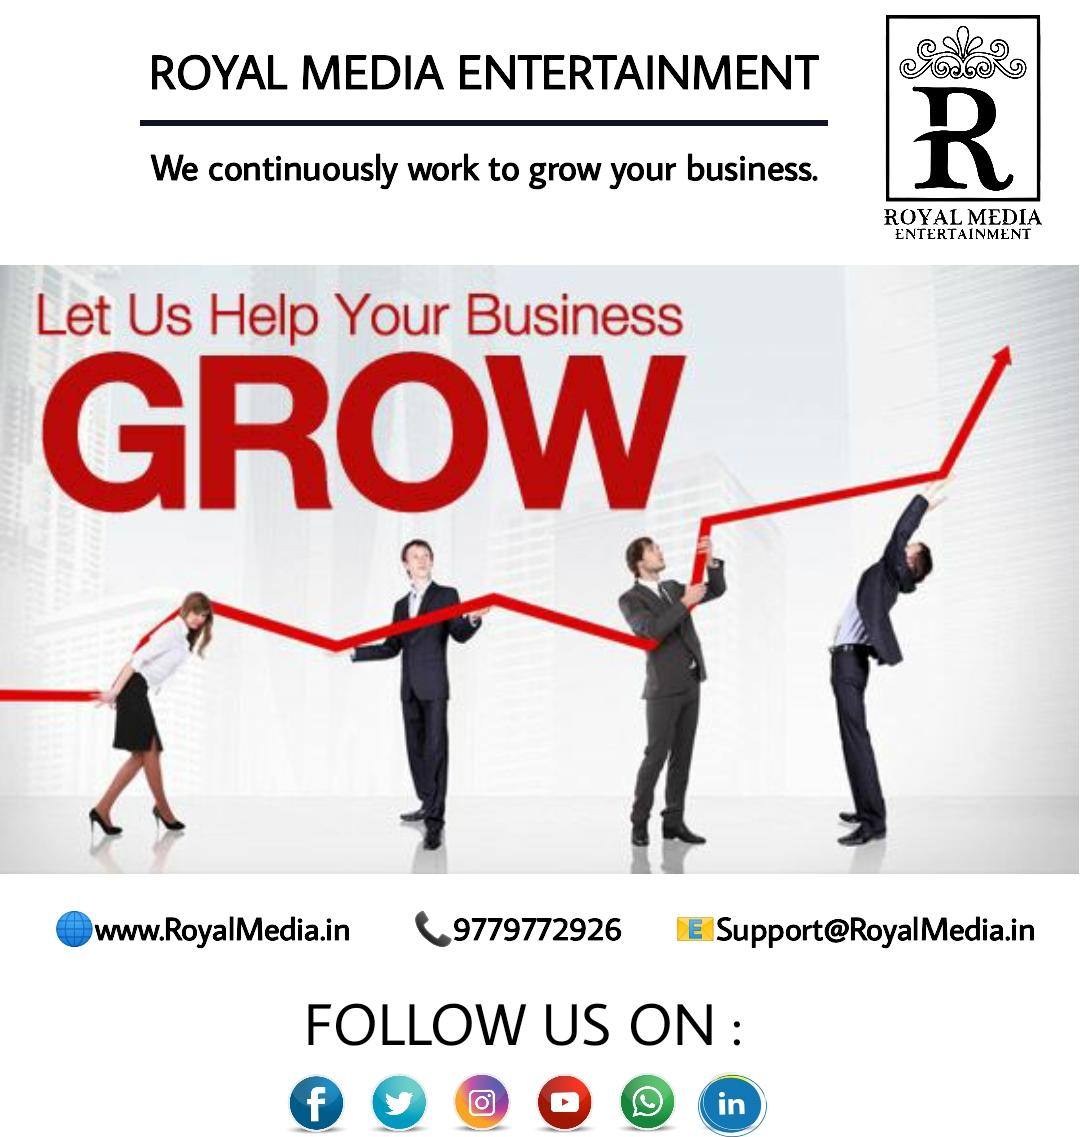 Let Us Help Your Business Grow.